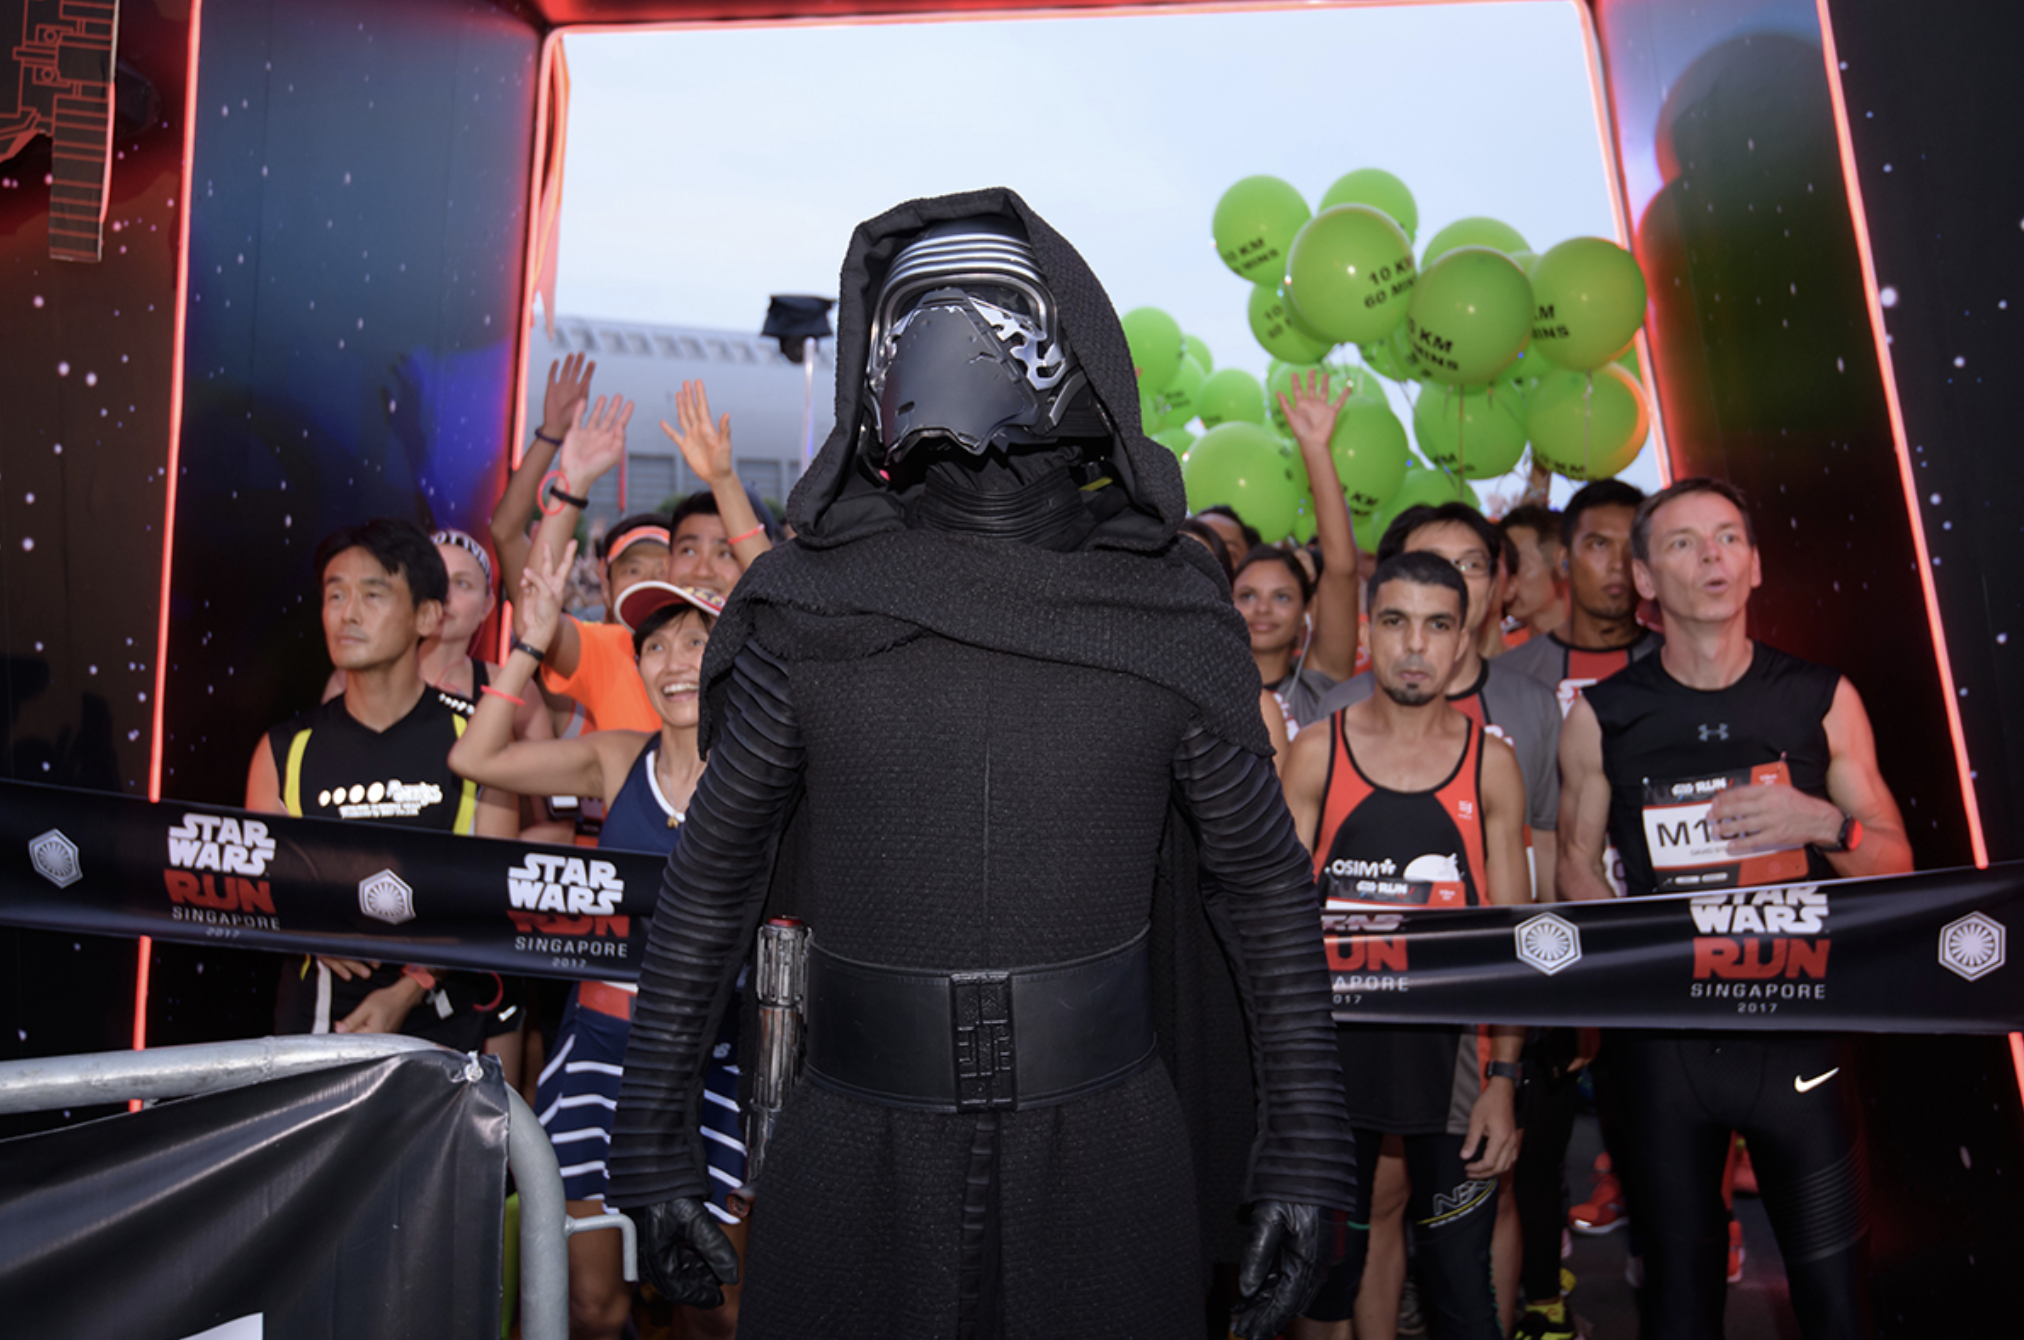 Photo courtesy: Star Wars Run